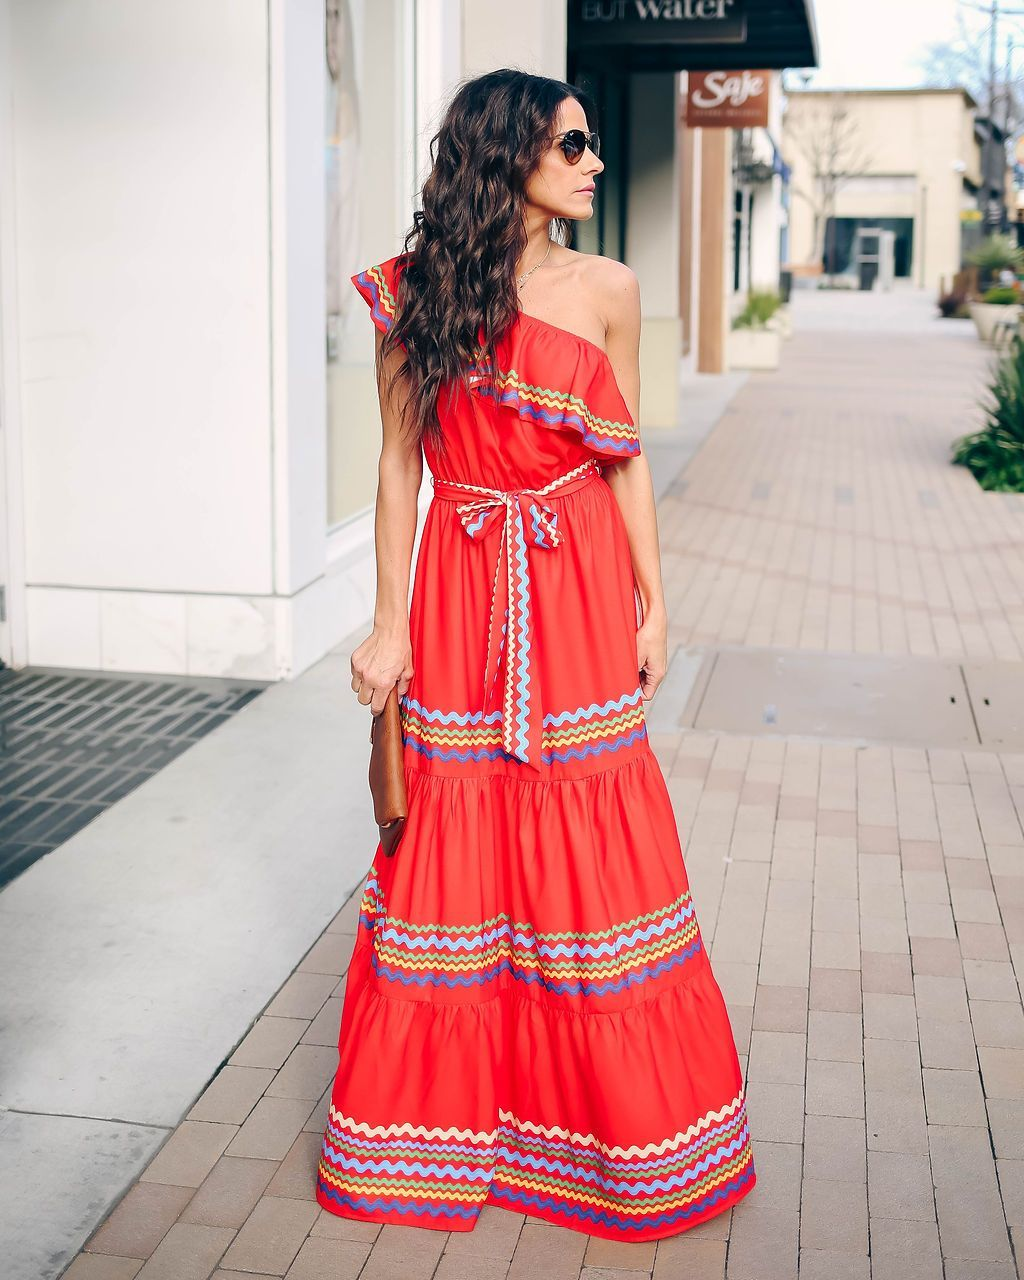 06ef5407273e Waves Upon The Shore One Shoulder Maxi Dress - Red/Multi - FINAL SALE –